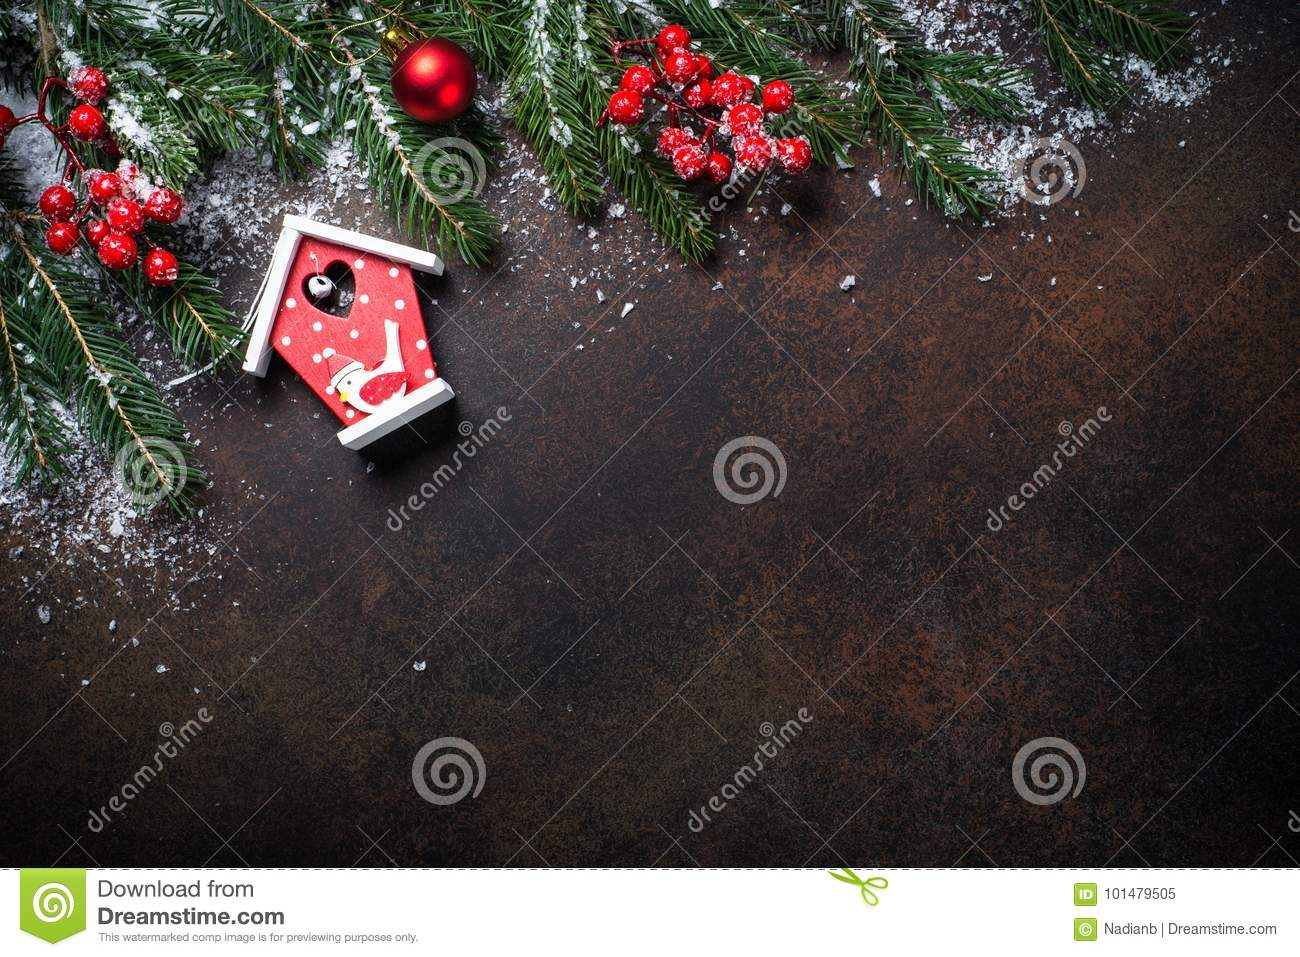 christmas background with a red bird house - Red Bird Christmas Tree Decorations